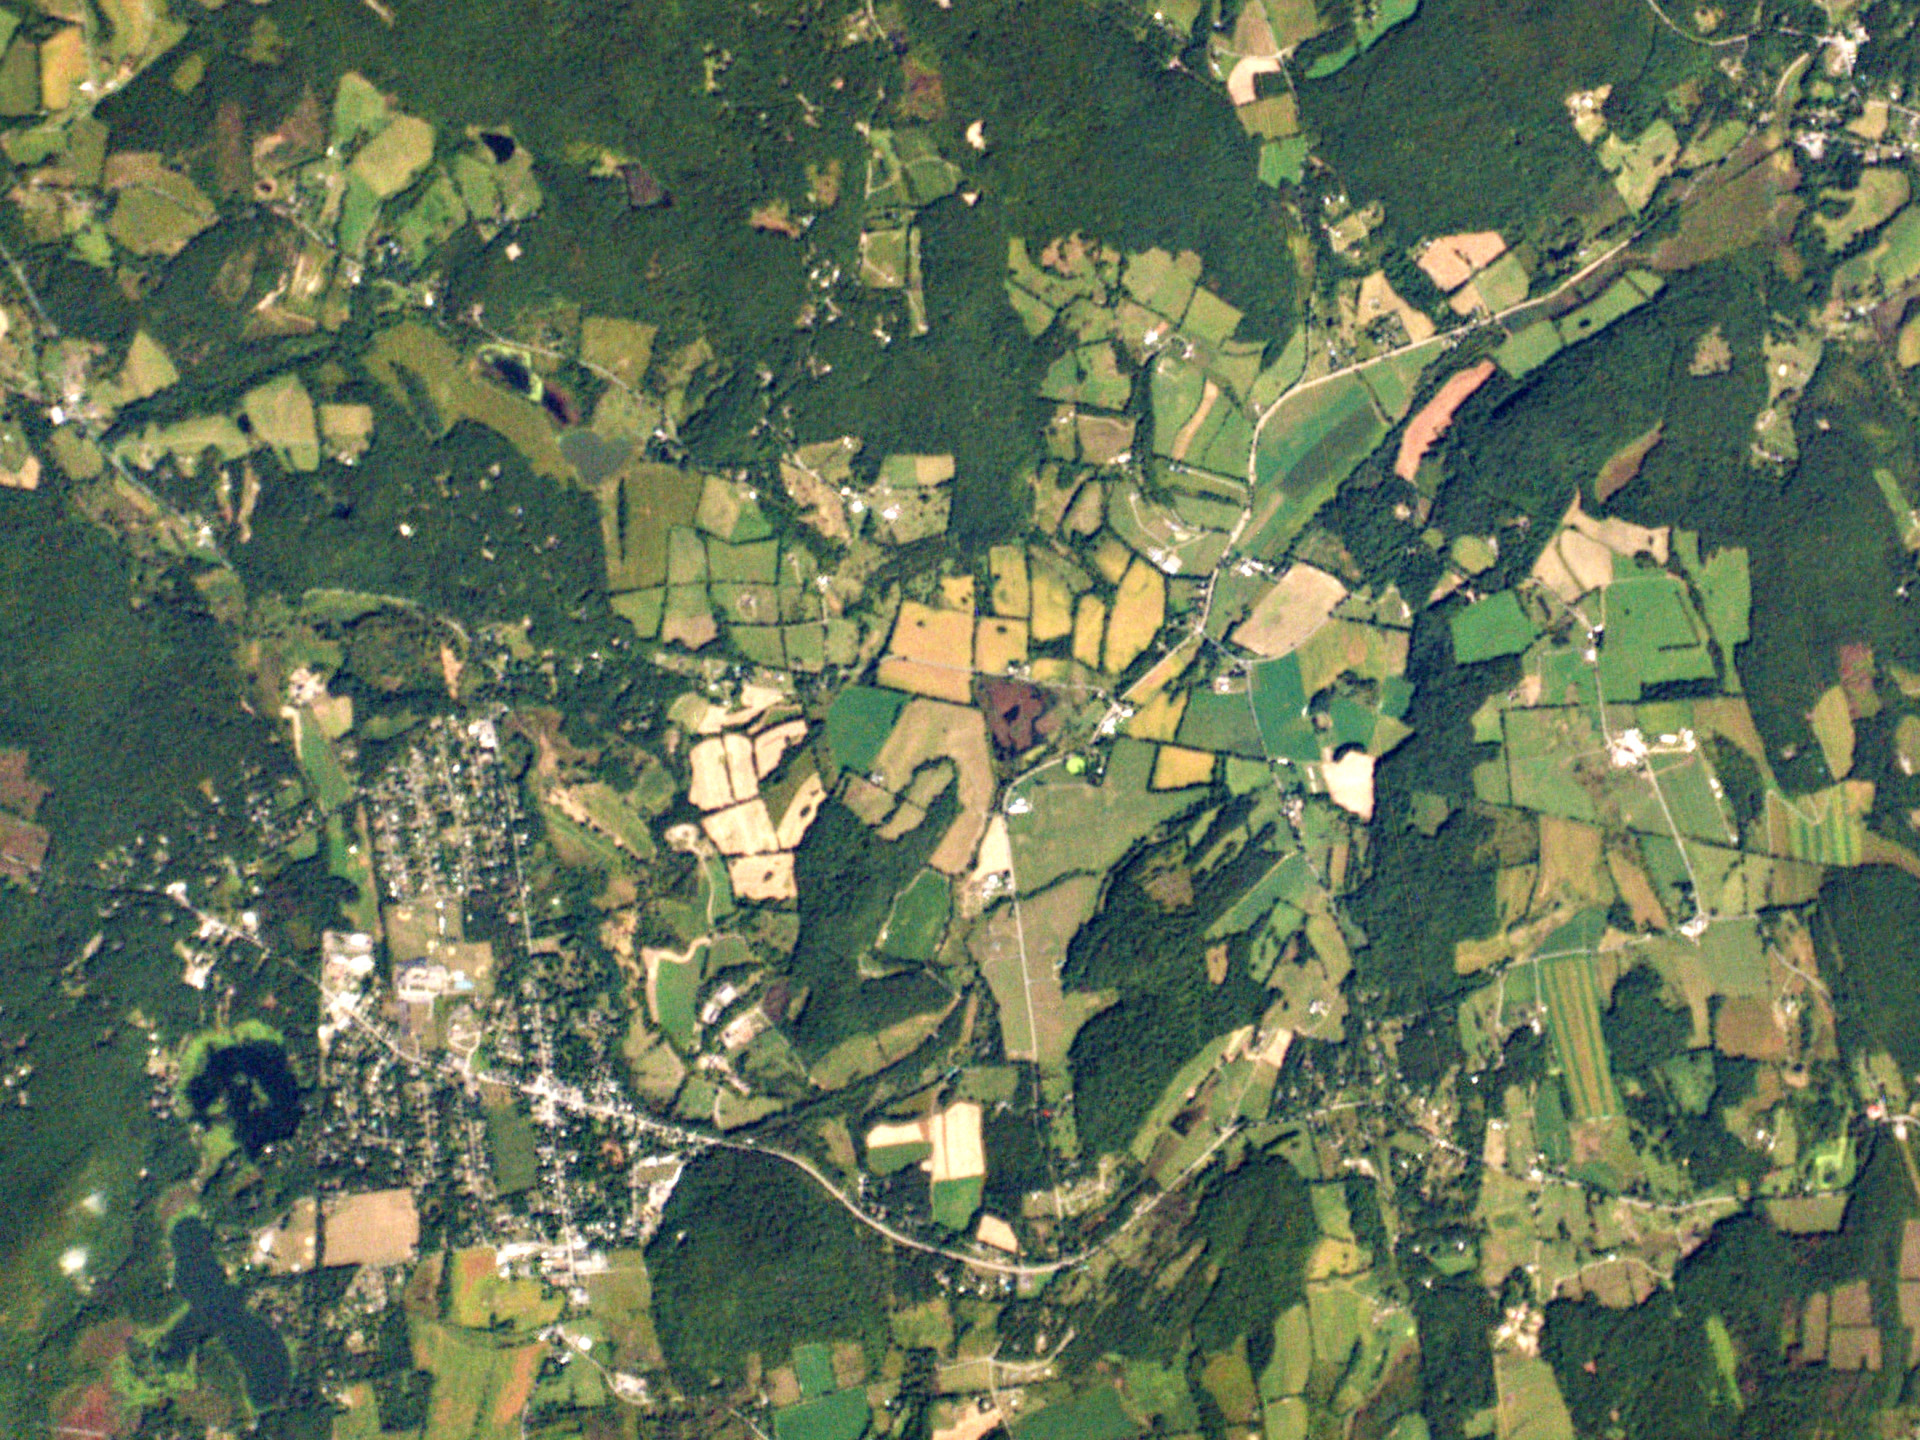 Pine Plains, N.Y. is an agricultural community about 100 miles from New York City, photographed here on Sept. 17, 2014. The U.C. Merced researchers estimate that New York City could potentially fulfill about 30 percent of its food needs with food grown within 100 miles of the city.